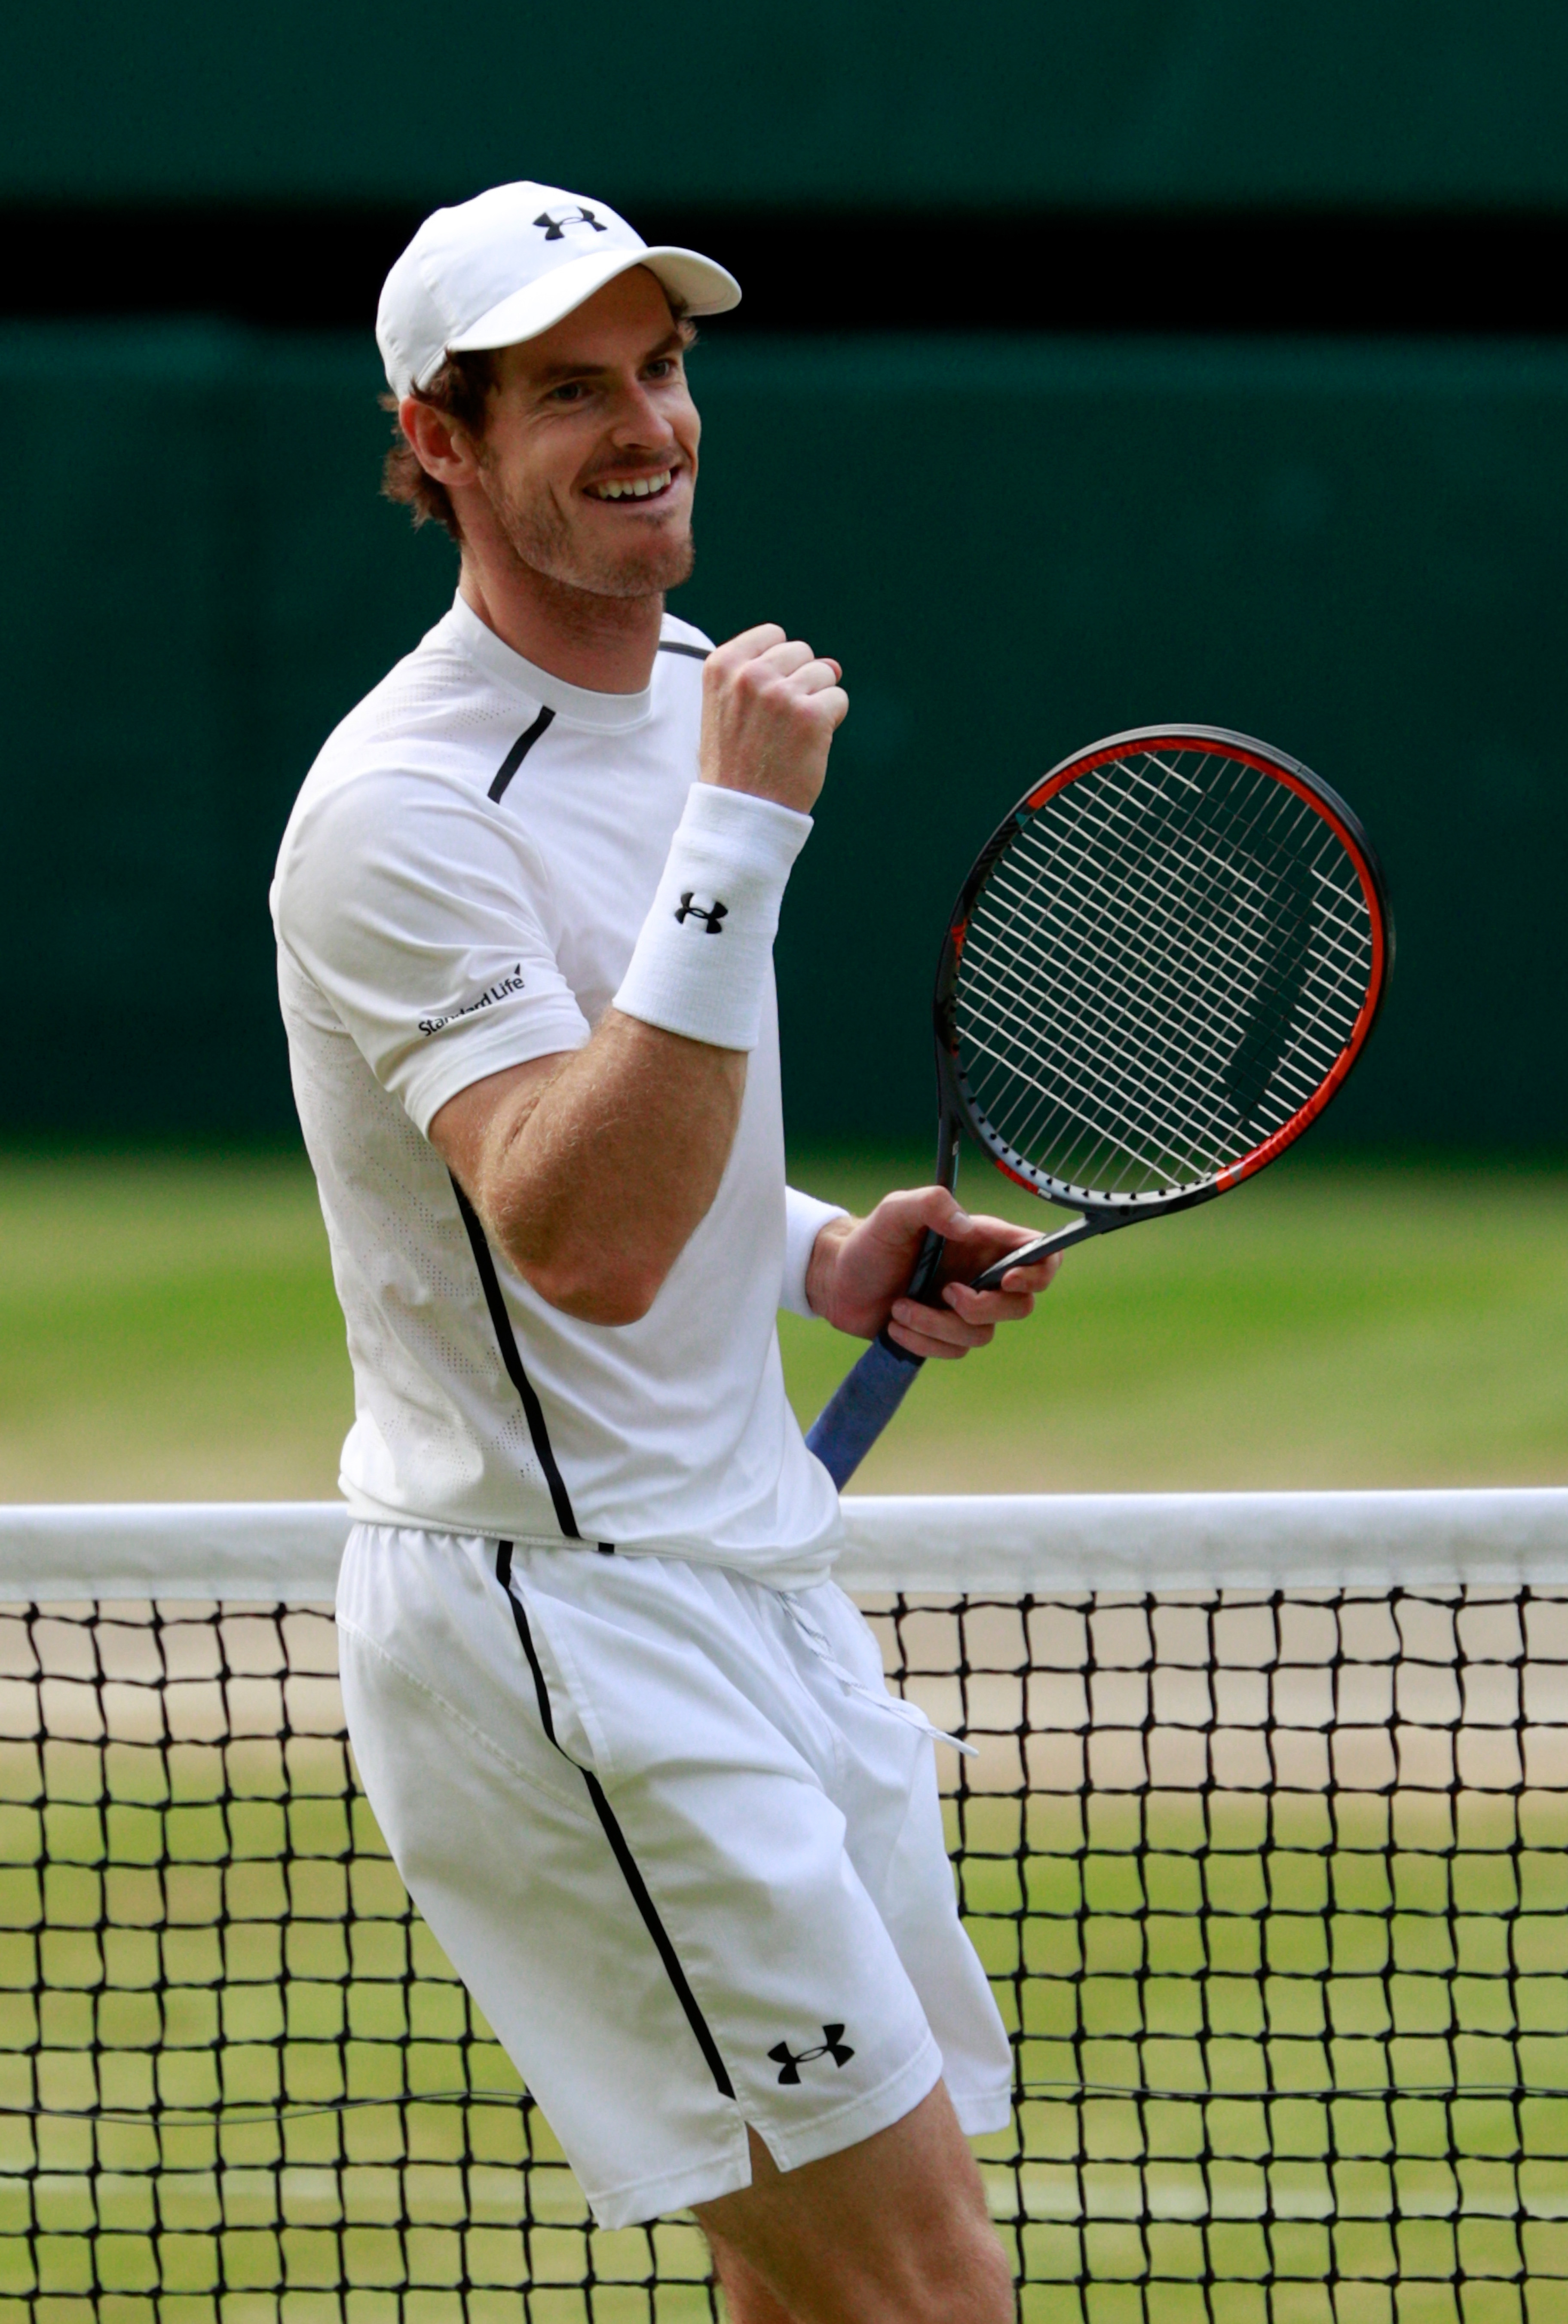 2016 Wimbledon results and scores: Andy Murray to meet Milos Raonic in finals